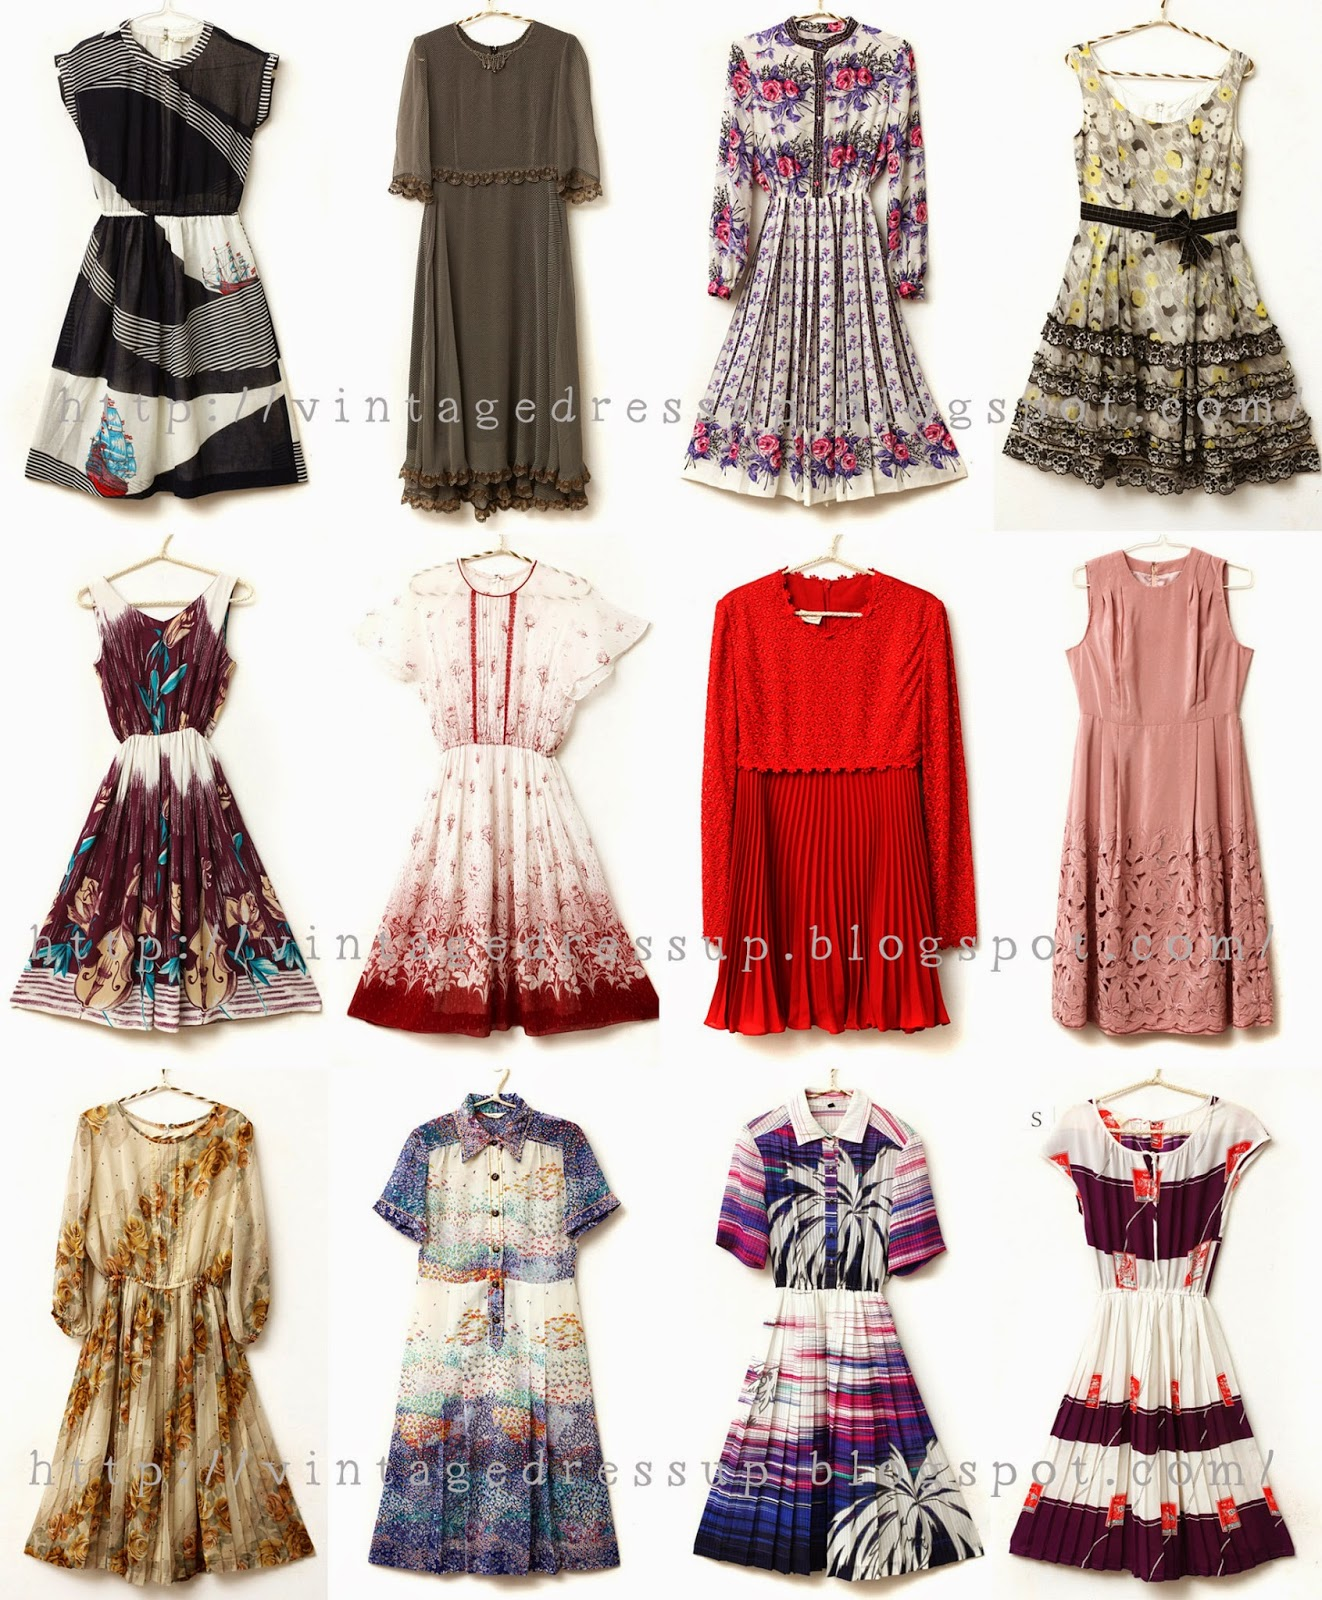 wholesale vintage clothing distributor vintage dress up